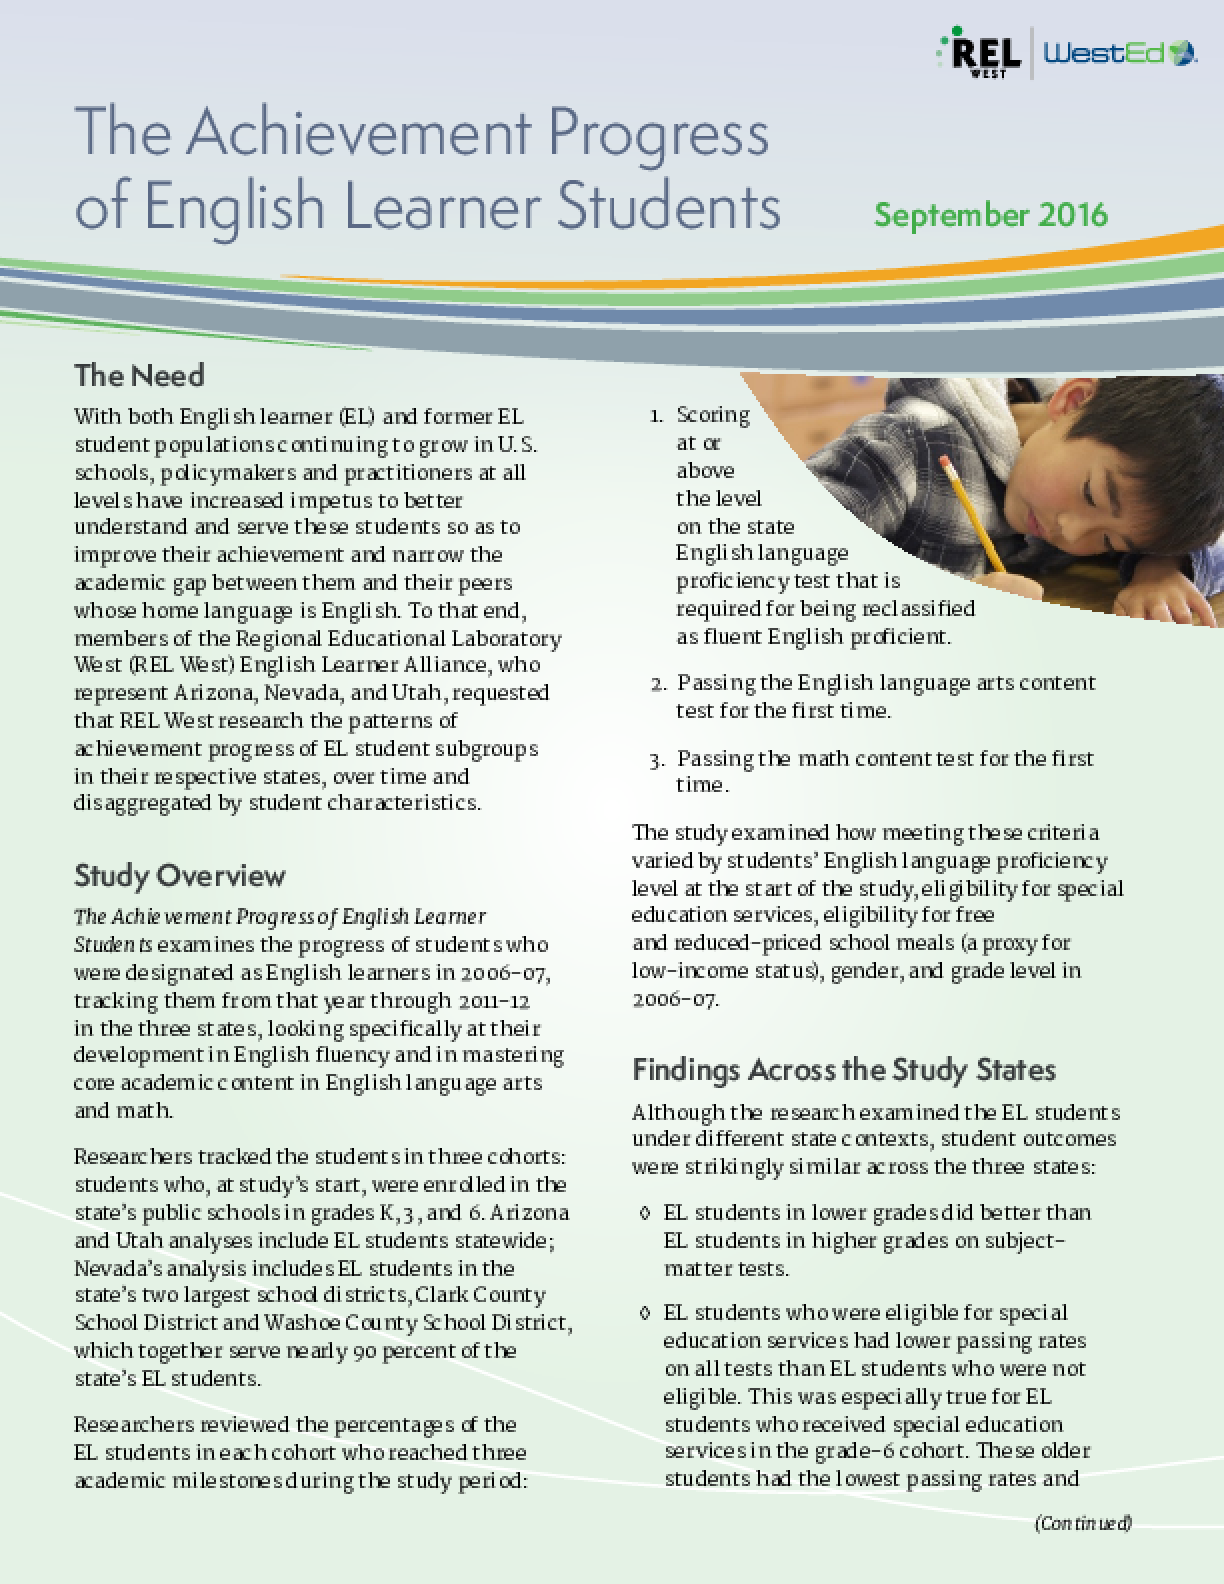 The Achievement Progress of English Learner Students